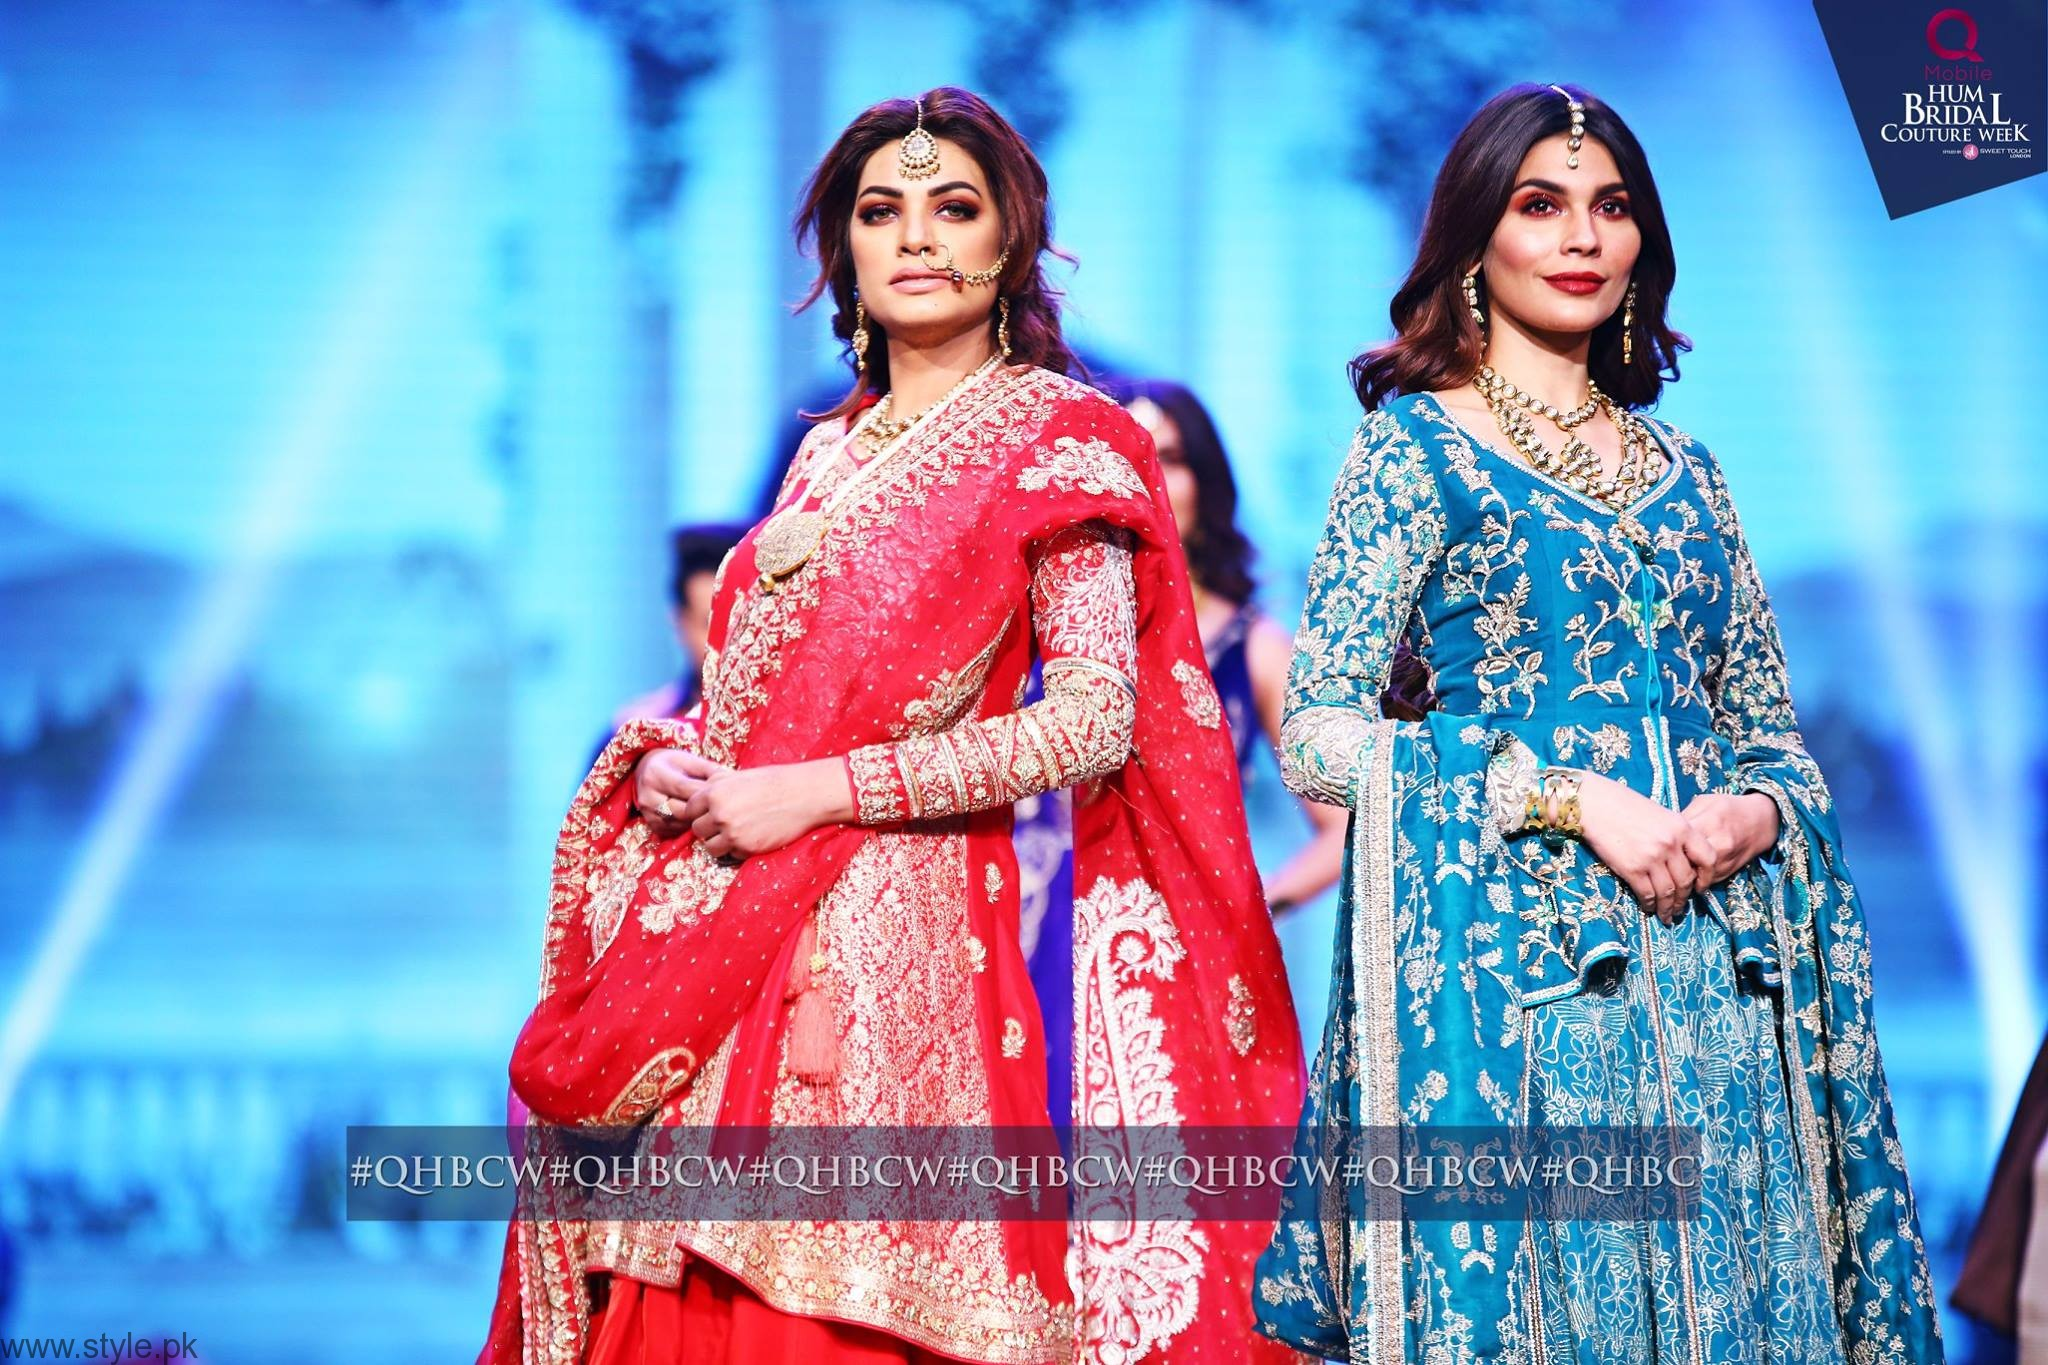 Amna babar - Bridal Couture Week 2016 Day 3